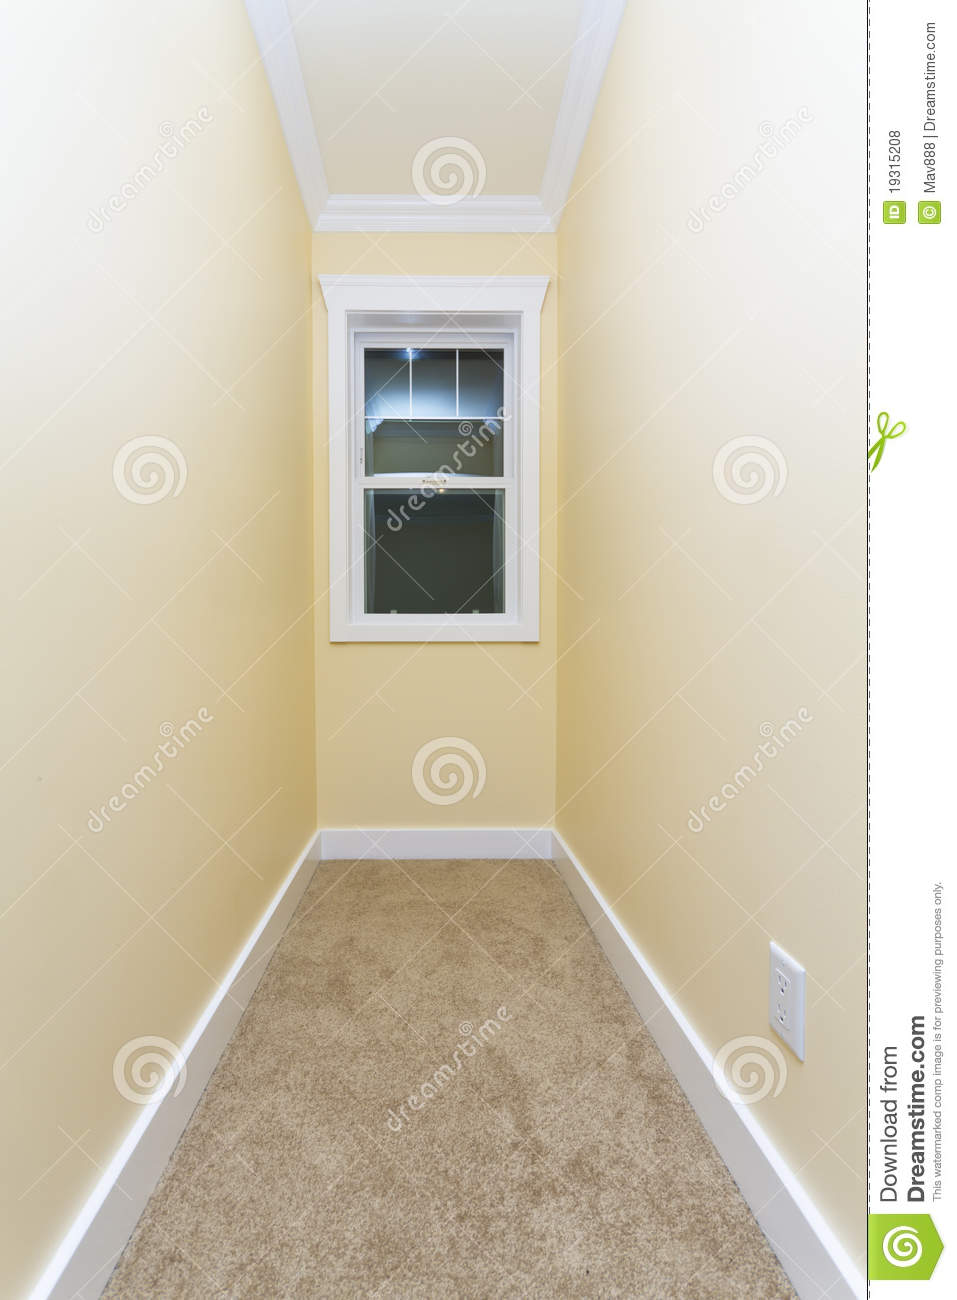 Small Empty Room Stock Photo Image Of Socket Apartment